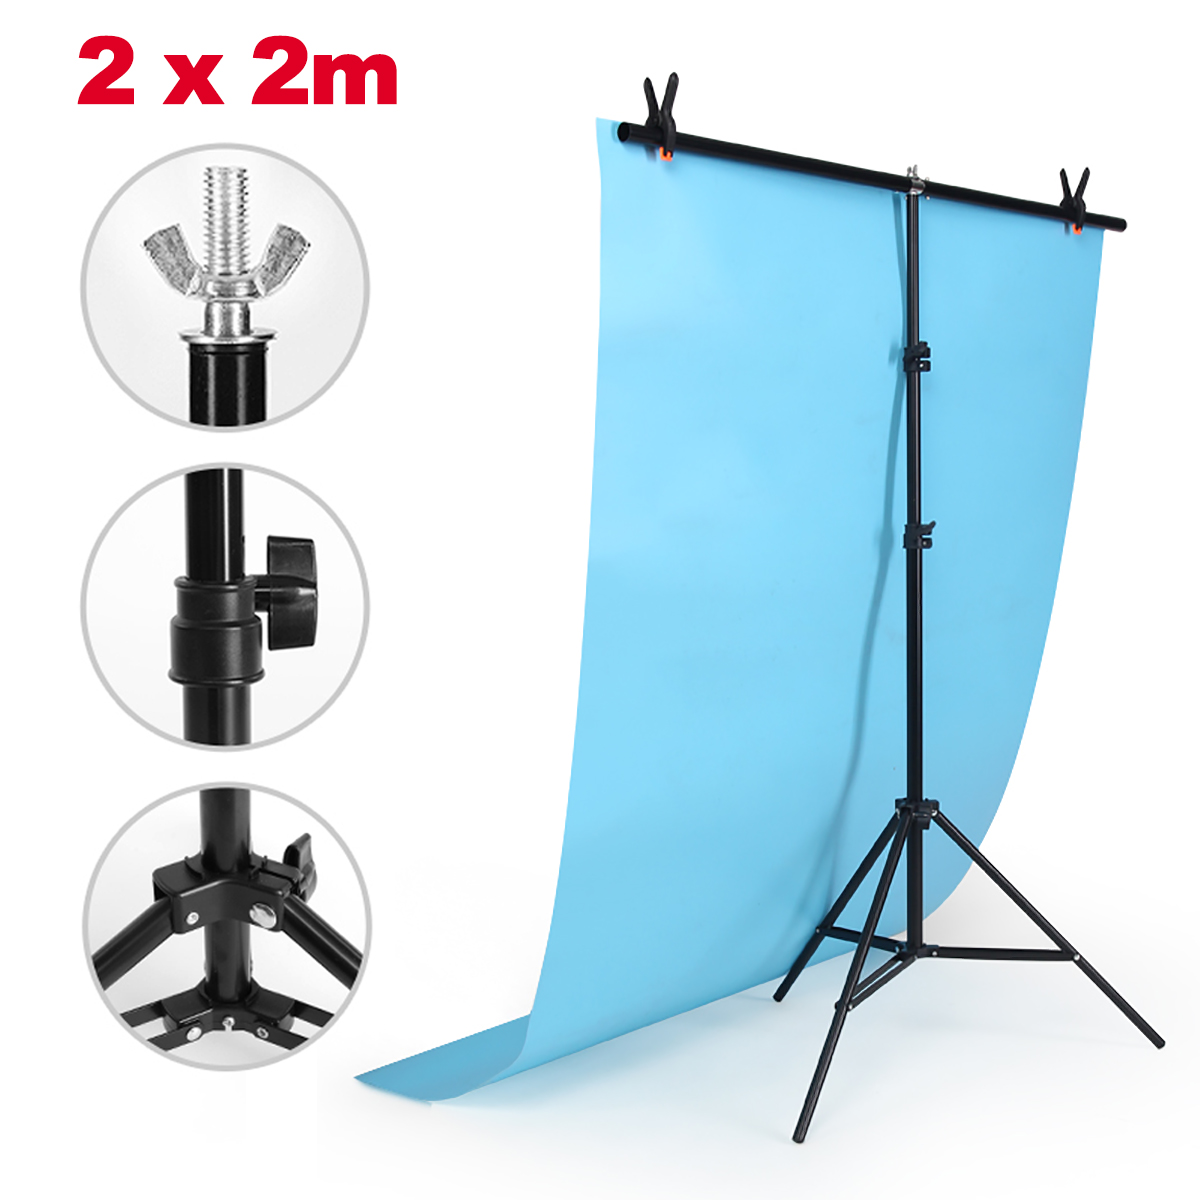 2*2m Adjustable Background Support Stand Photo Backdrop Crossbar Kit Photography 2 8m x 3m pro adjustable background support stand photo backdrop crossbar kit photography stand 3 clips for photo studio